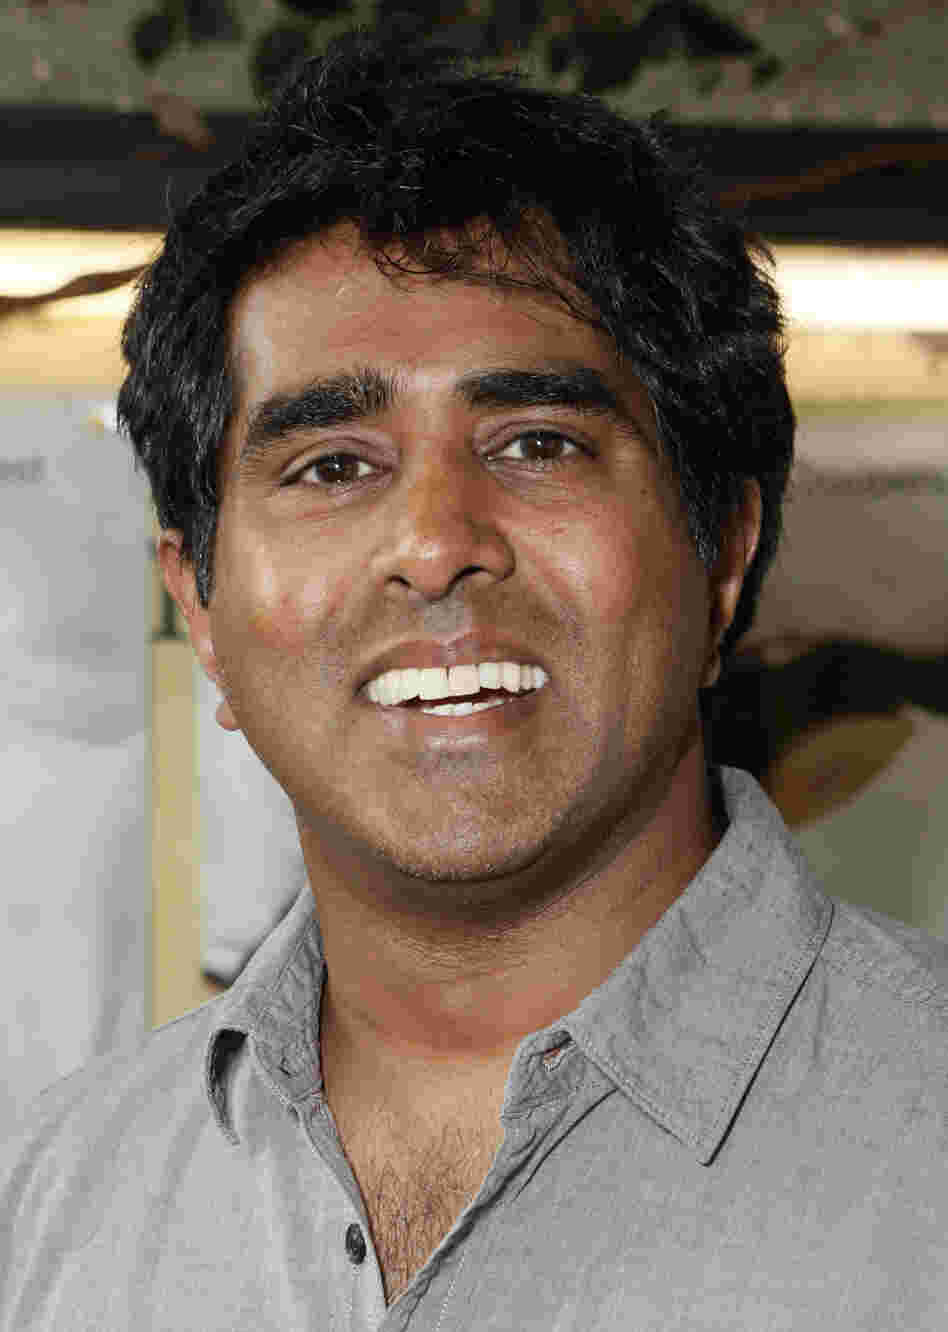 Writer-director Jay Chandrasekhar's credits include Super Troopers, Beerfest and The Babymakers, which opened in theaters this weekend,